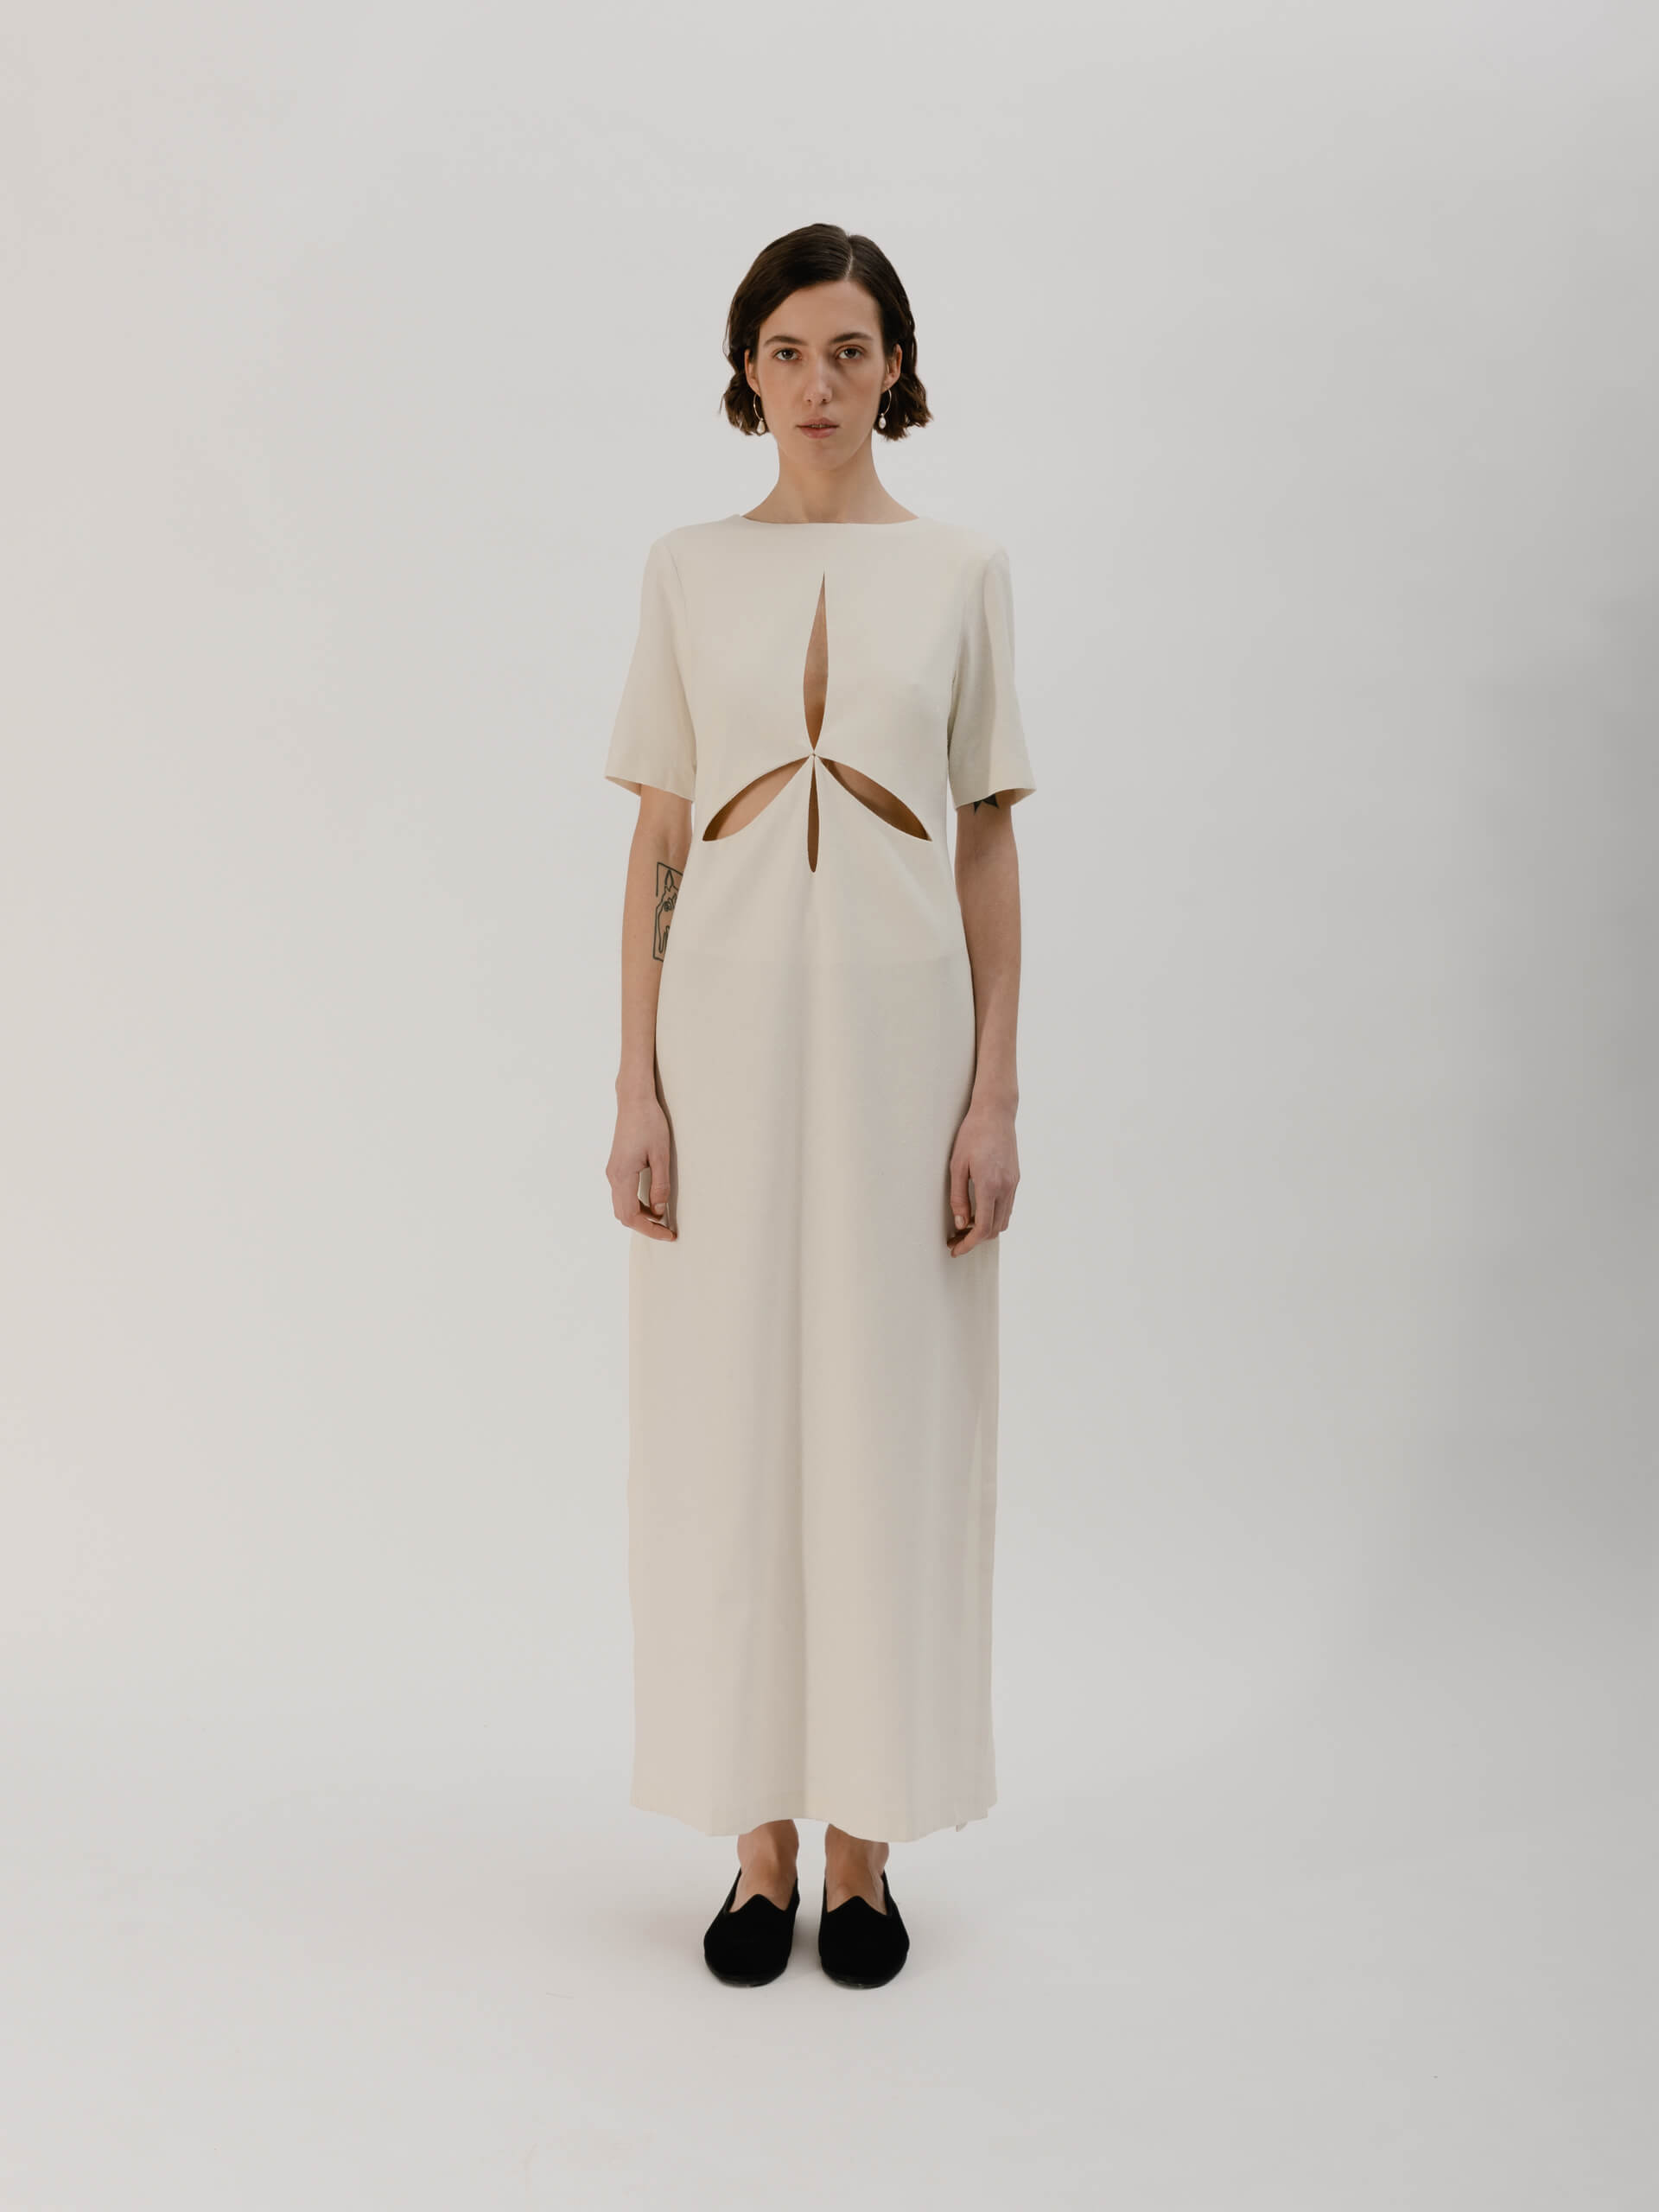 Mia dress, raw silk avorio